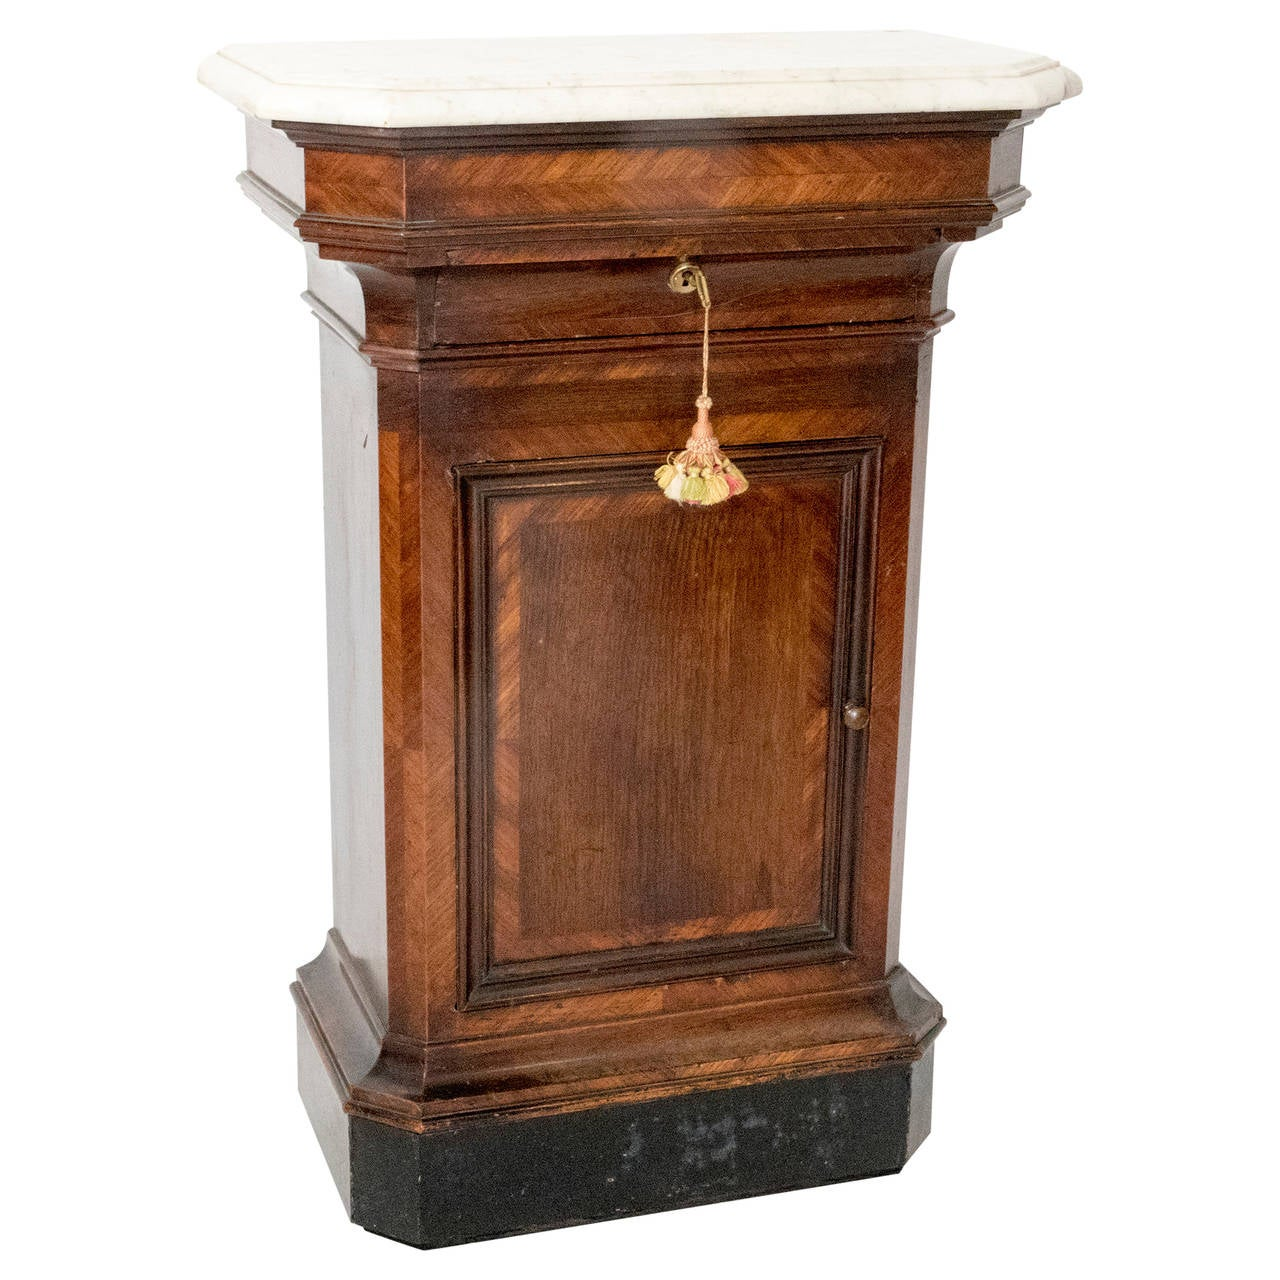 19th century french pedestal cabinet at 1stdibs for 19th century kitchen cabinets